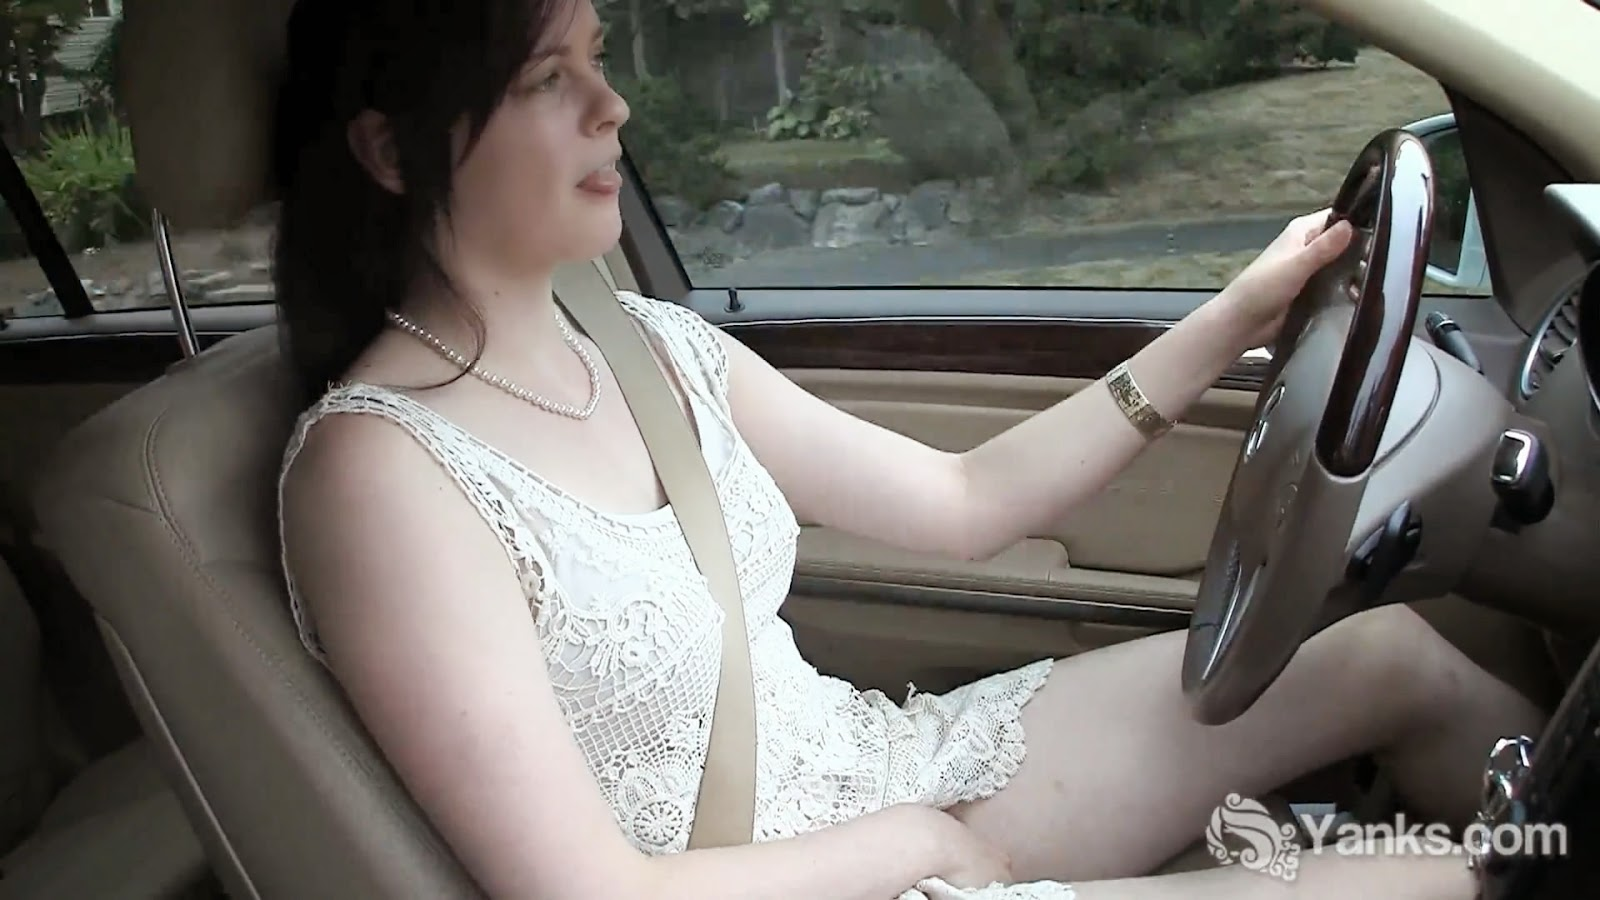 from Asa nude pics of women driving